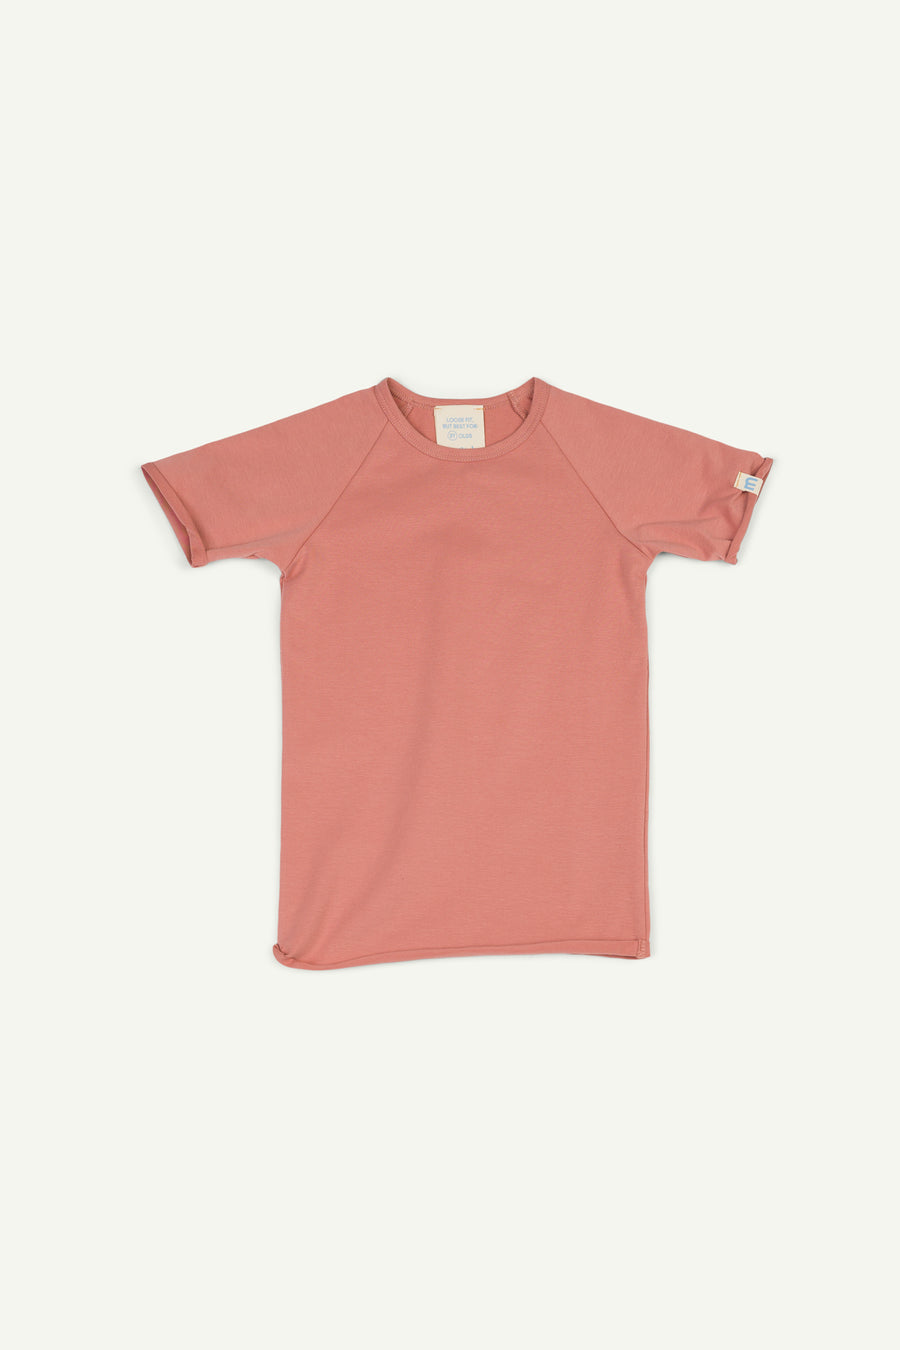 Pink t's